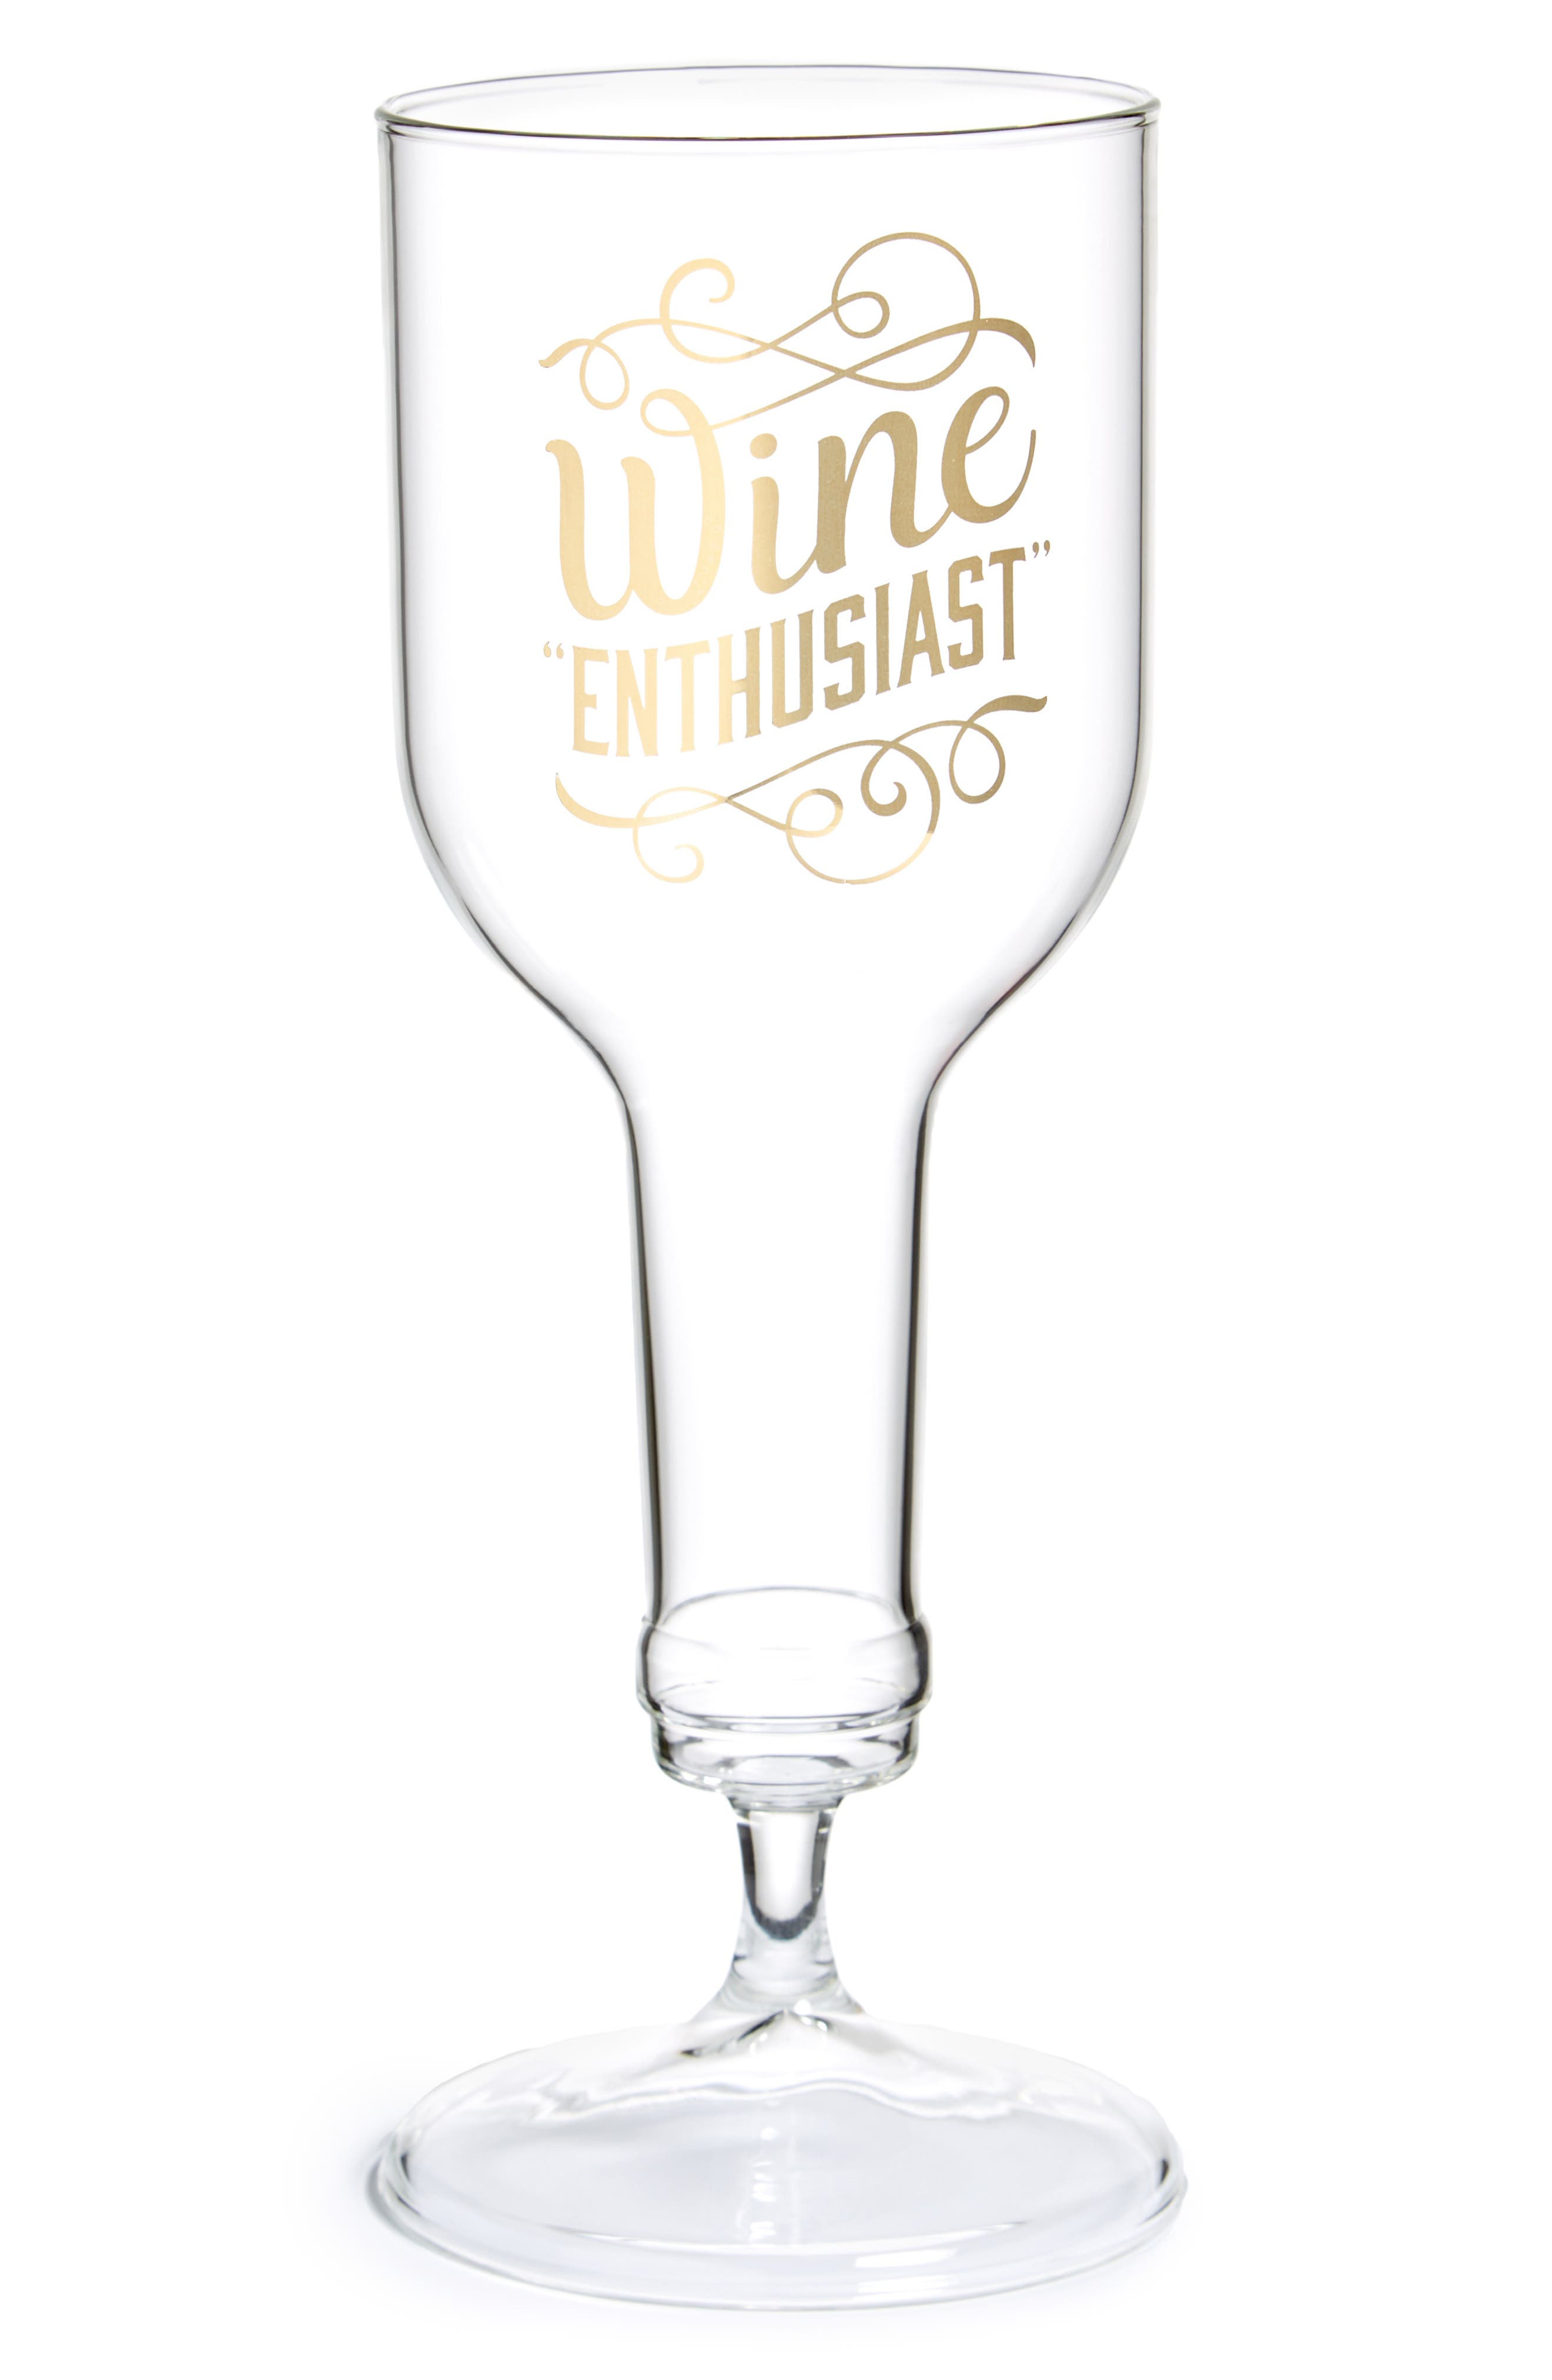 Alternate Image 1 Selected - Fred & Friends Wine Enthusiast Glass